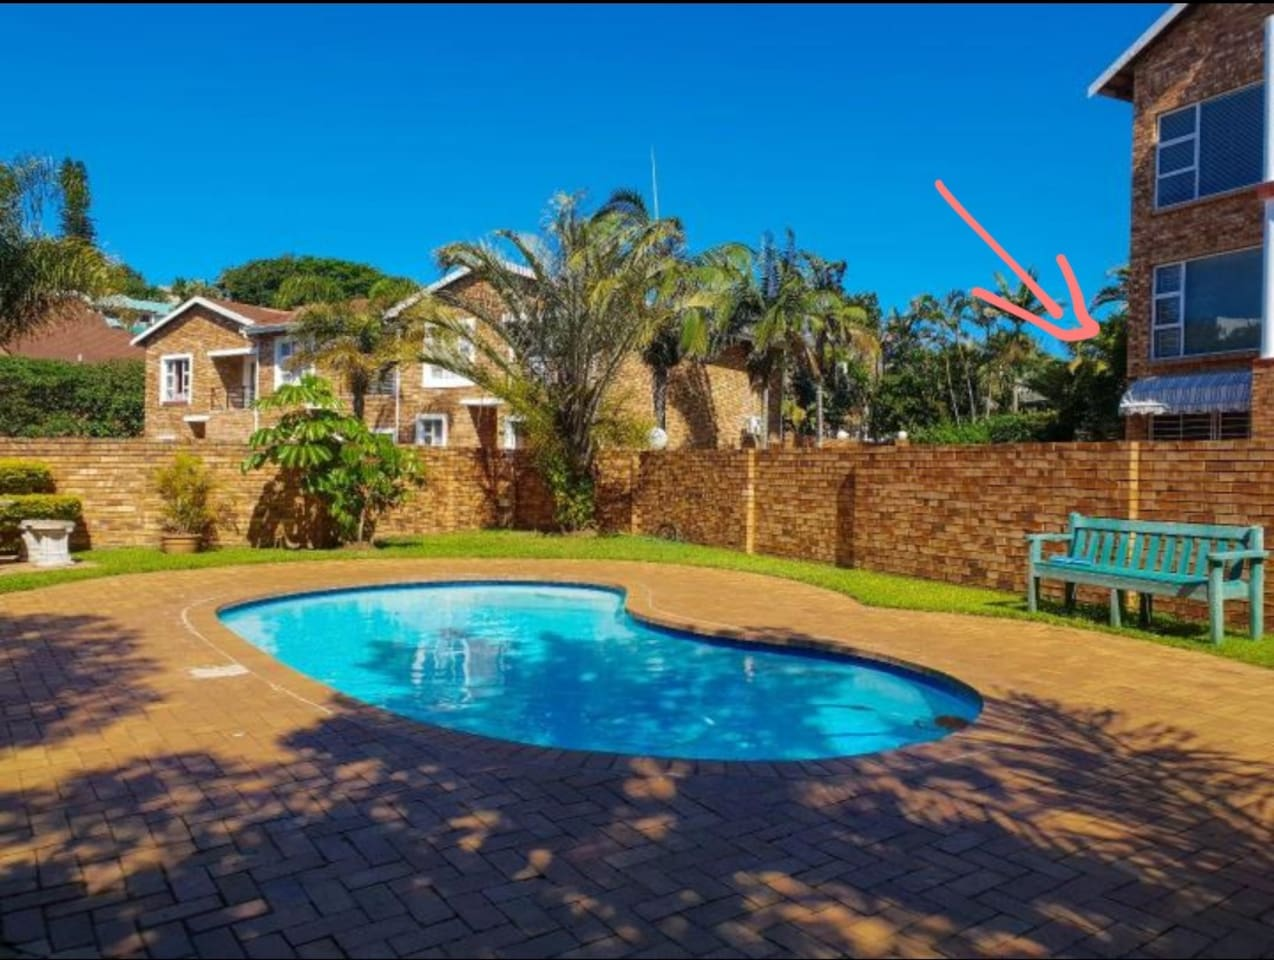 Pool and braai area in complex